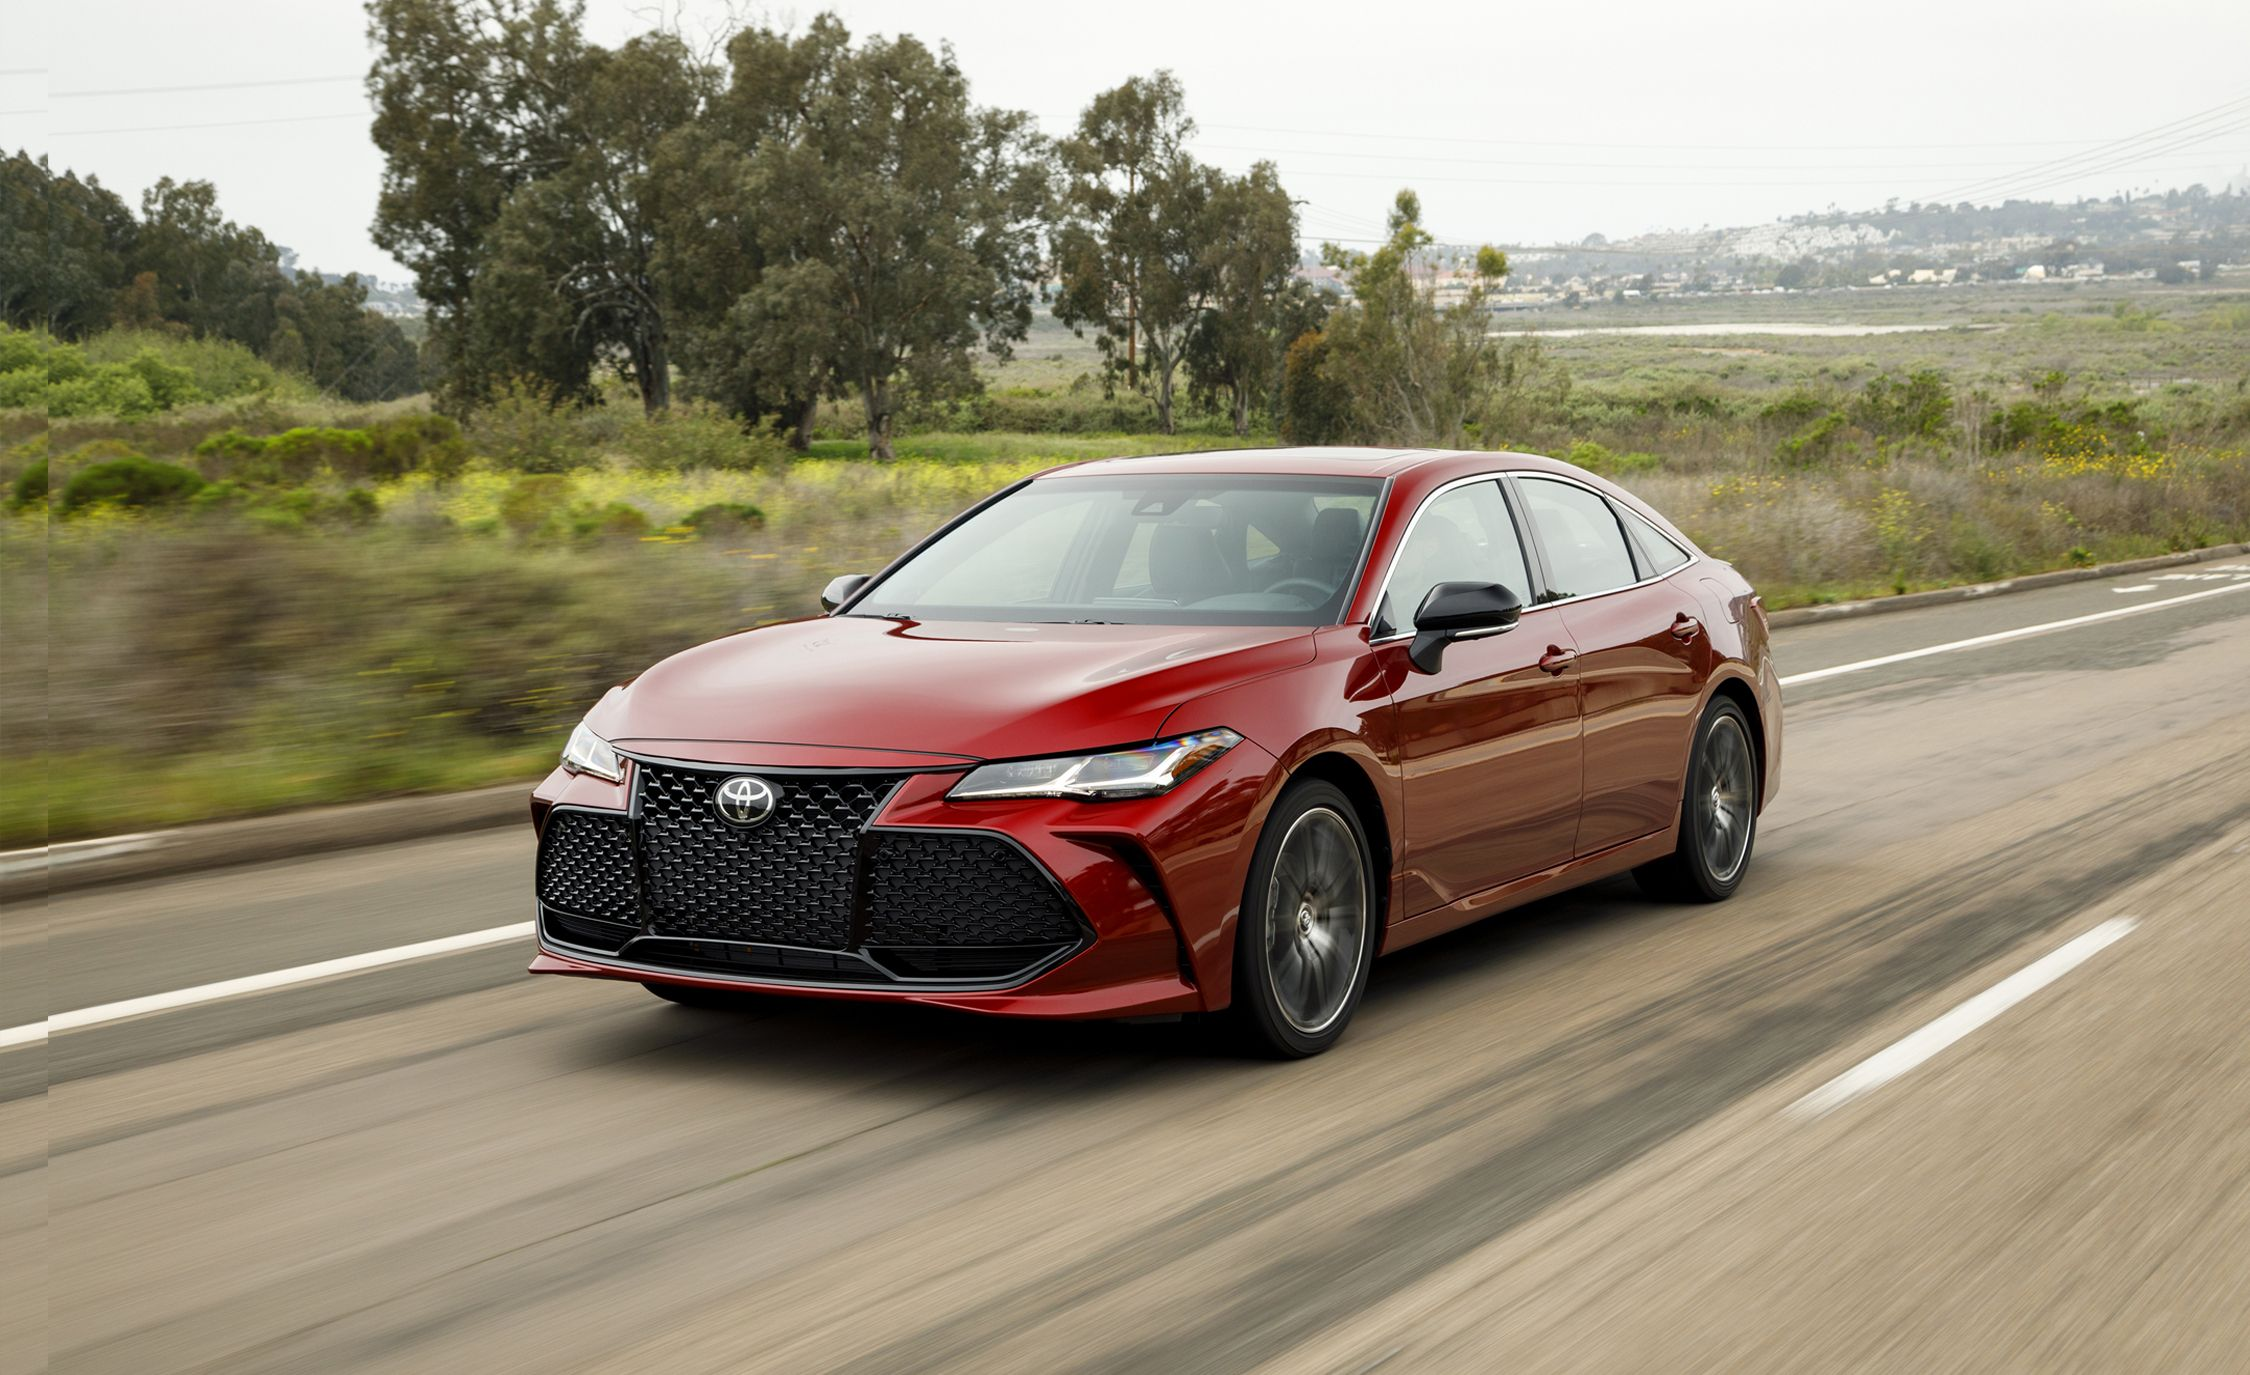 top xle toyota cars touring speed edition sport tourin avalon